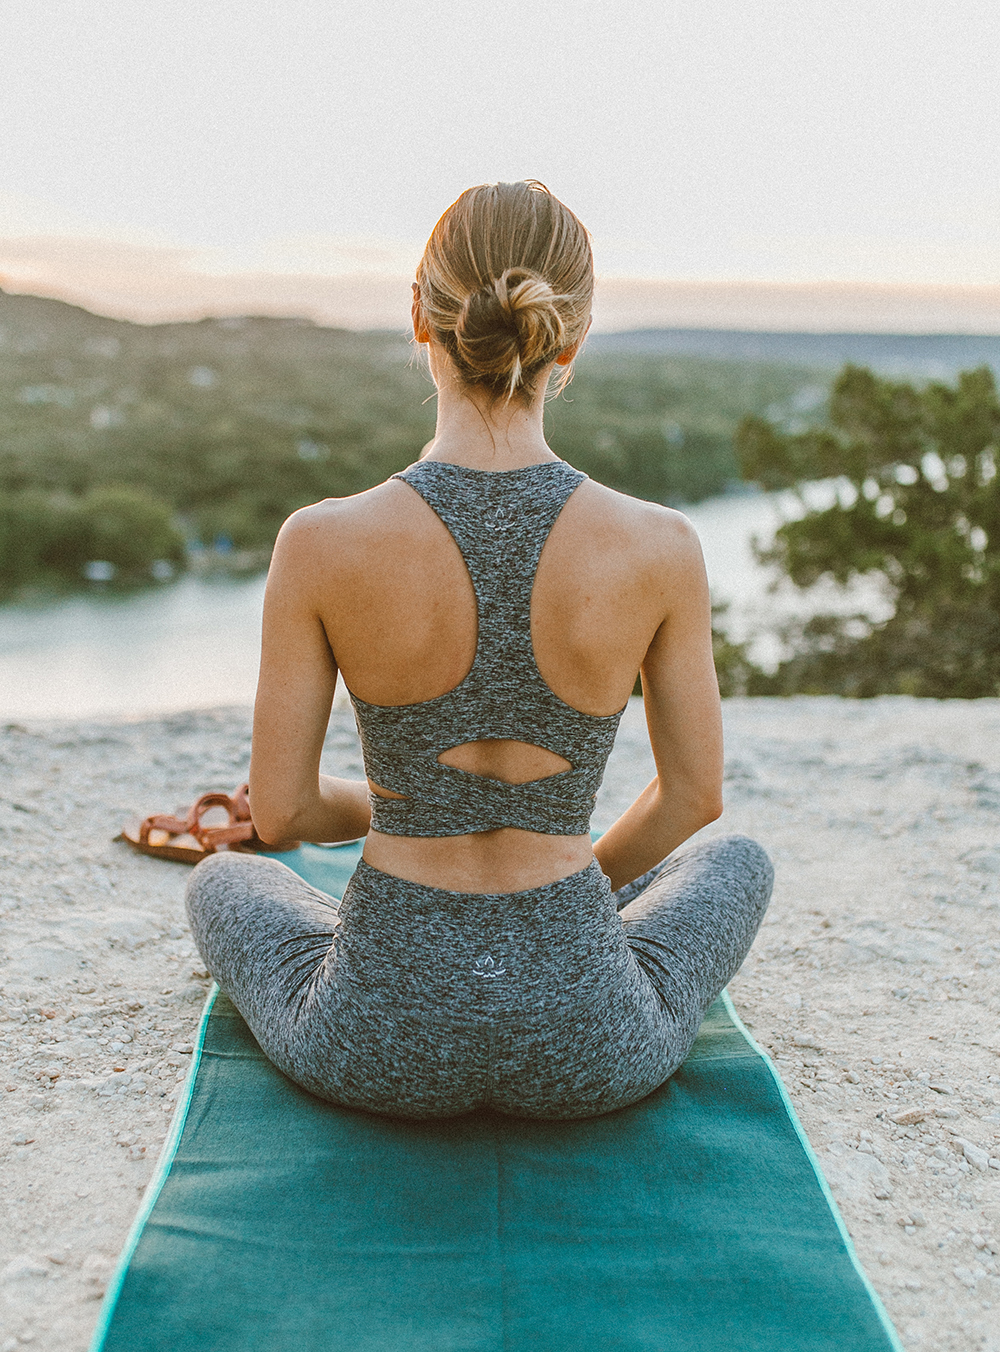 livvyland-blog-olivia-watson-austin-texas-mount-bonnell-yoga-backcountry-beyond-yoga-spacedye-leggings-sports-bra-13